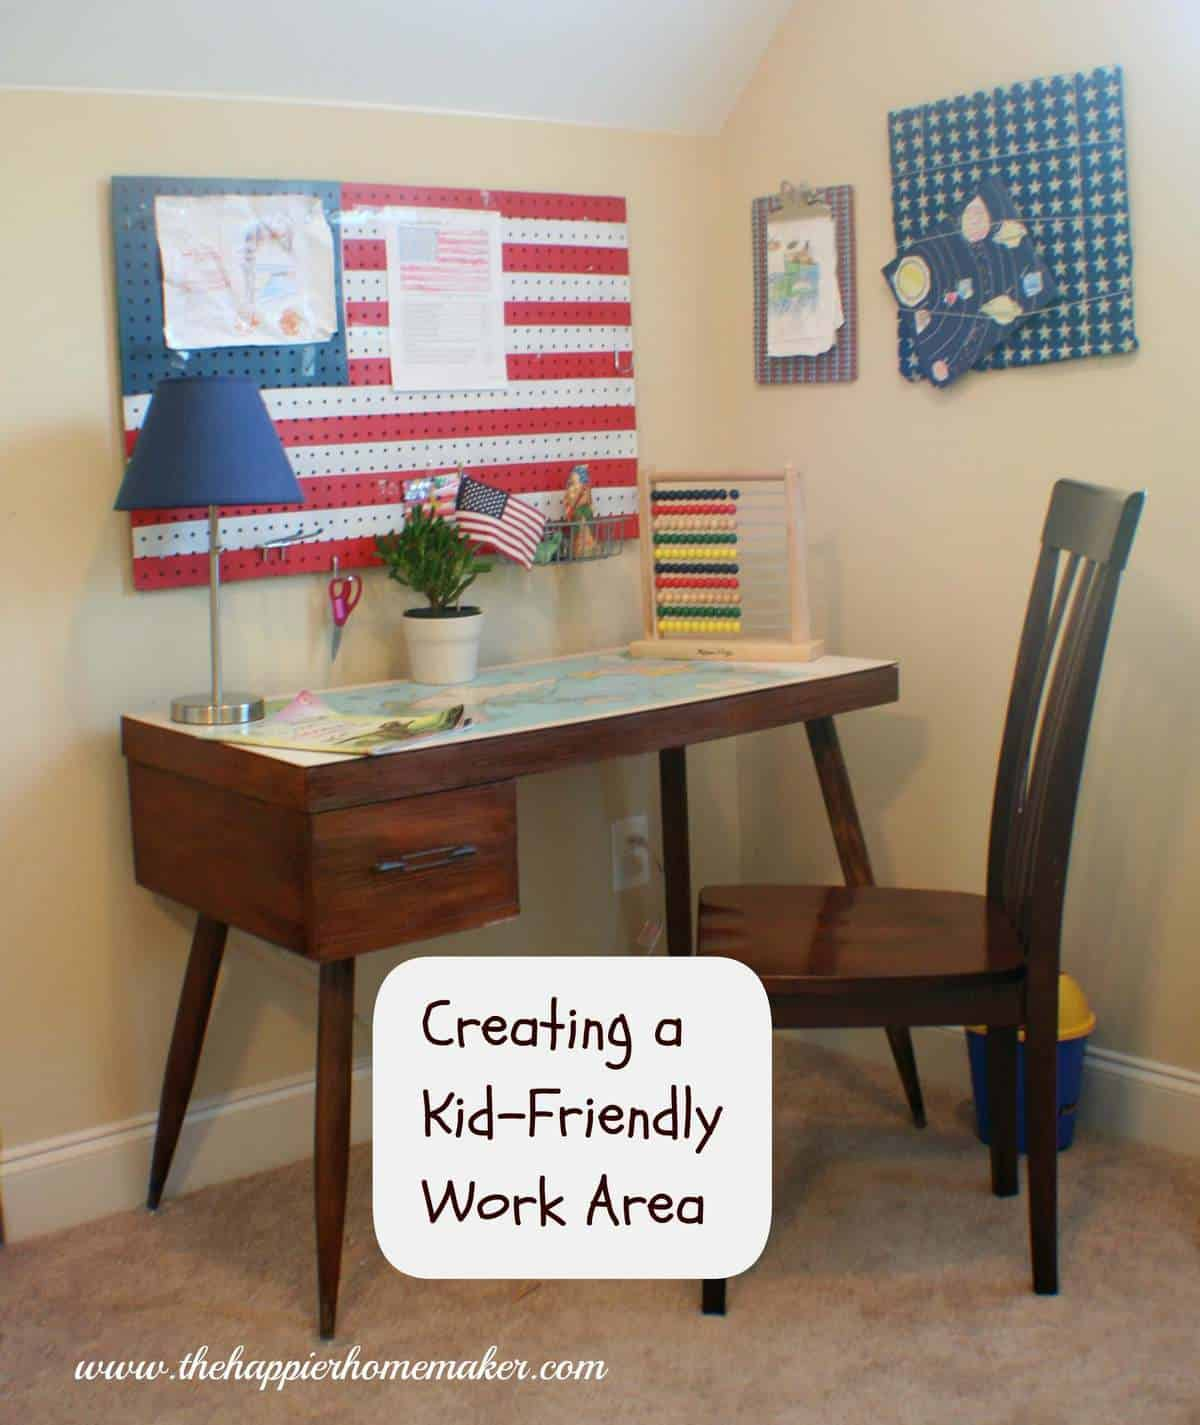 Creating a Kid-Friendly Work Area